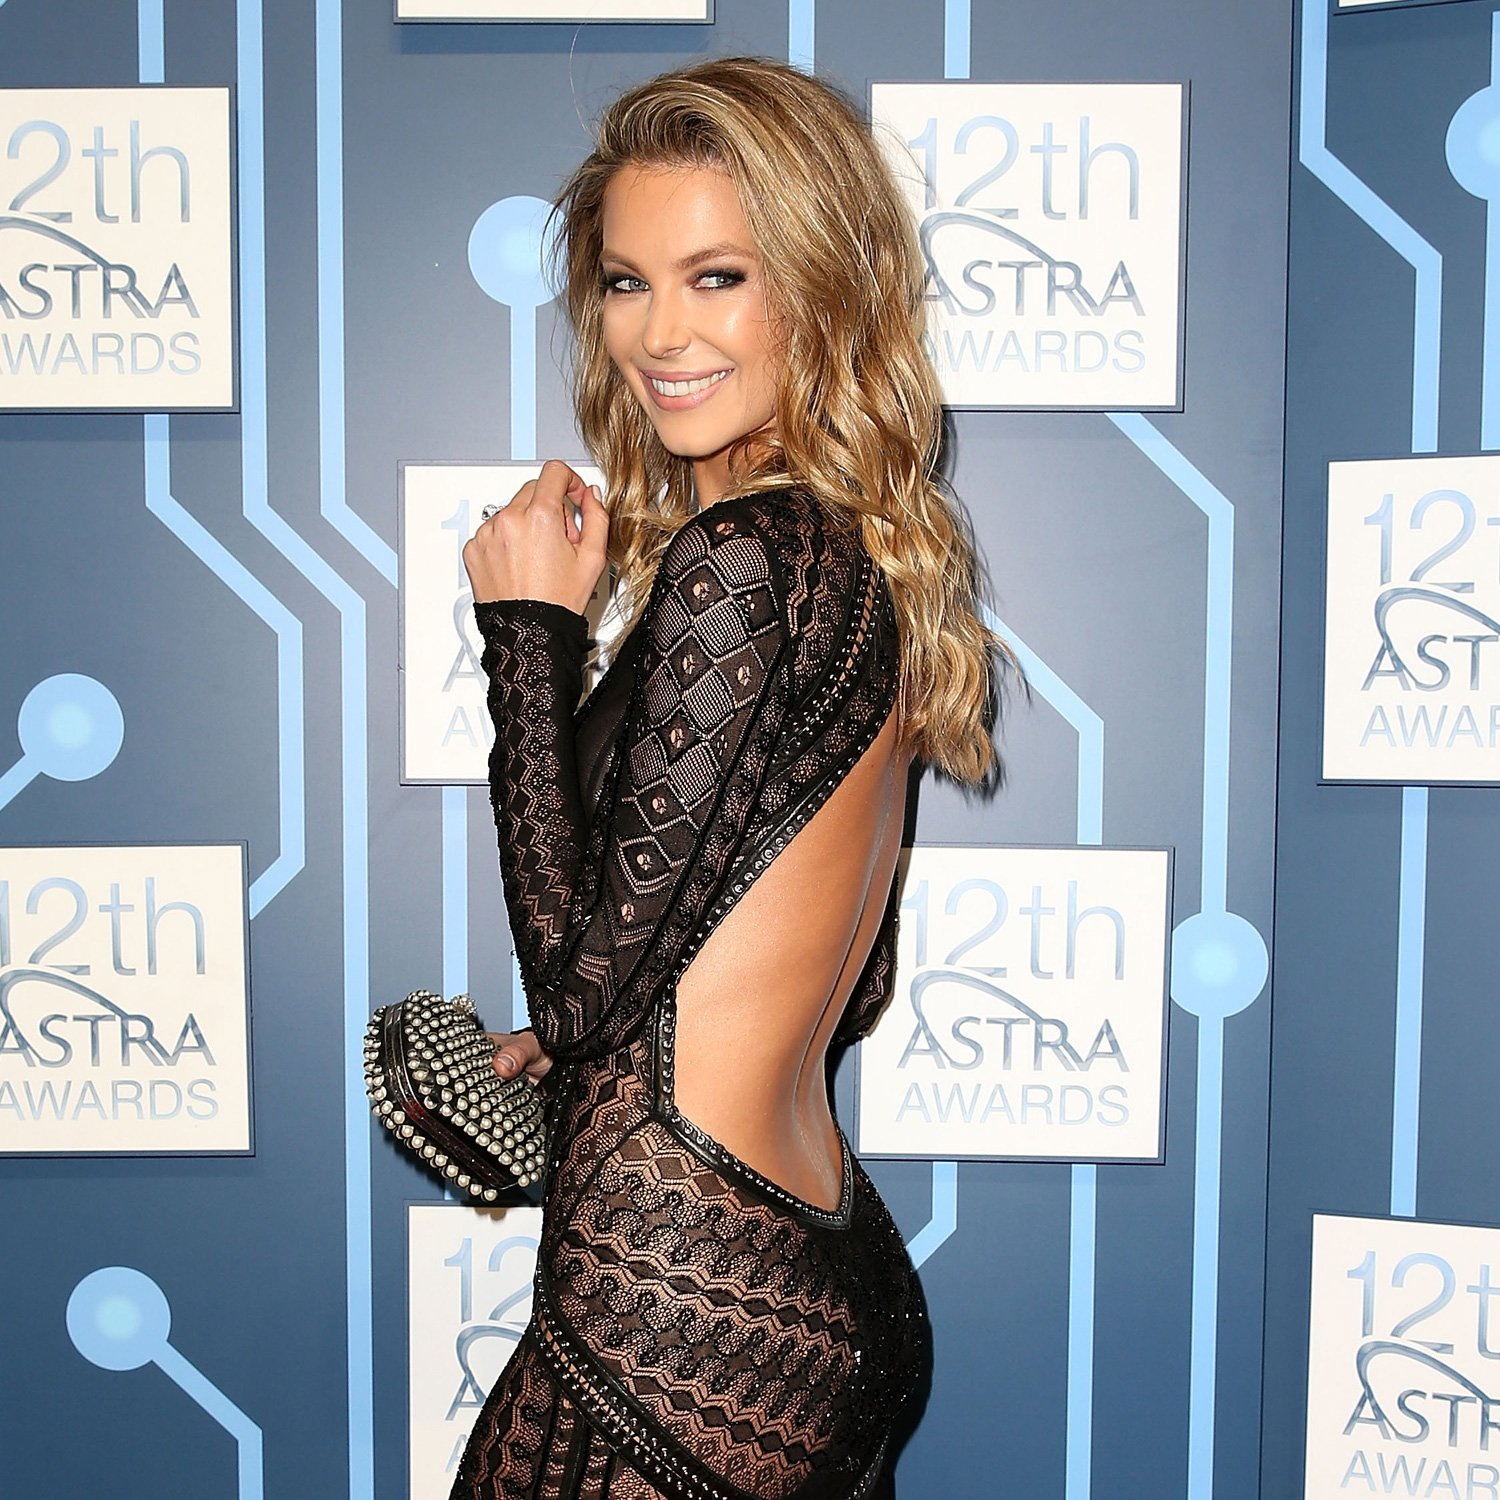 2014-ASTRA-Awards-Red-Carpet-Pictures.jpg